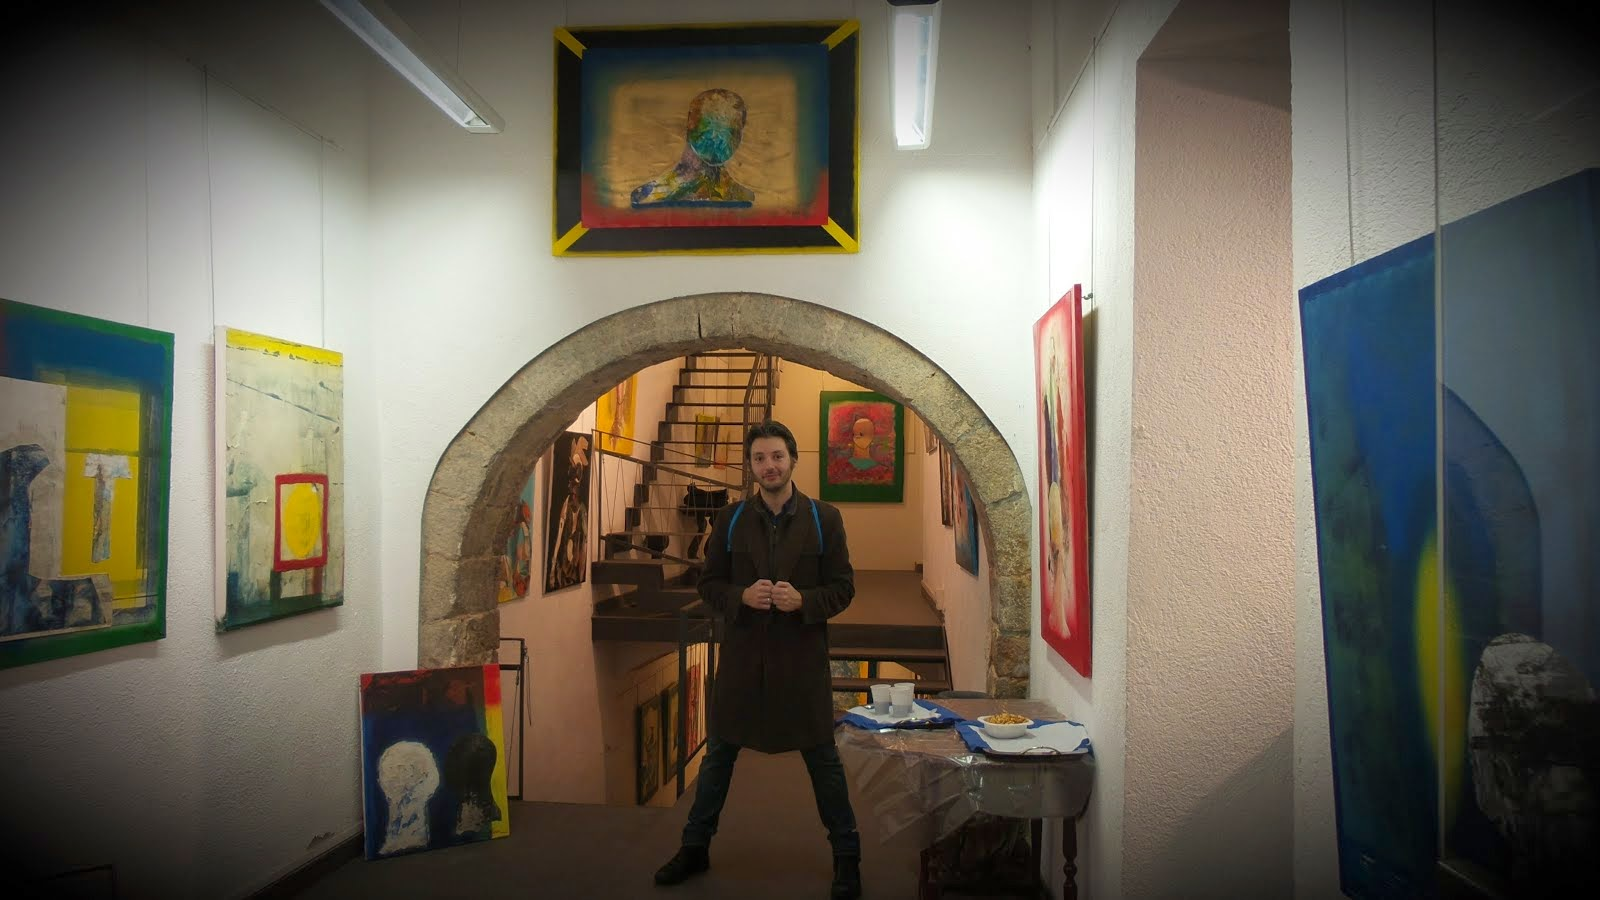 Exhibition in Galkeria Nova3 Sabadell